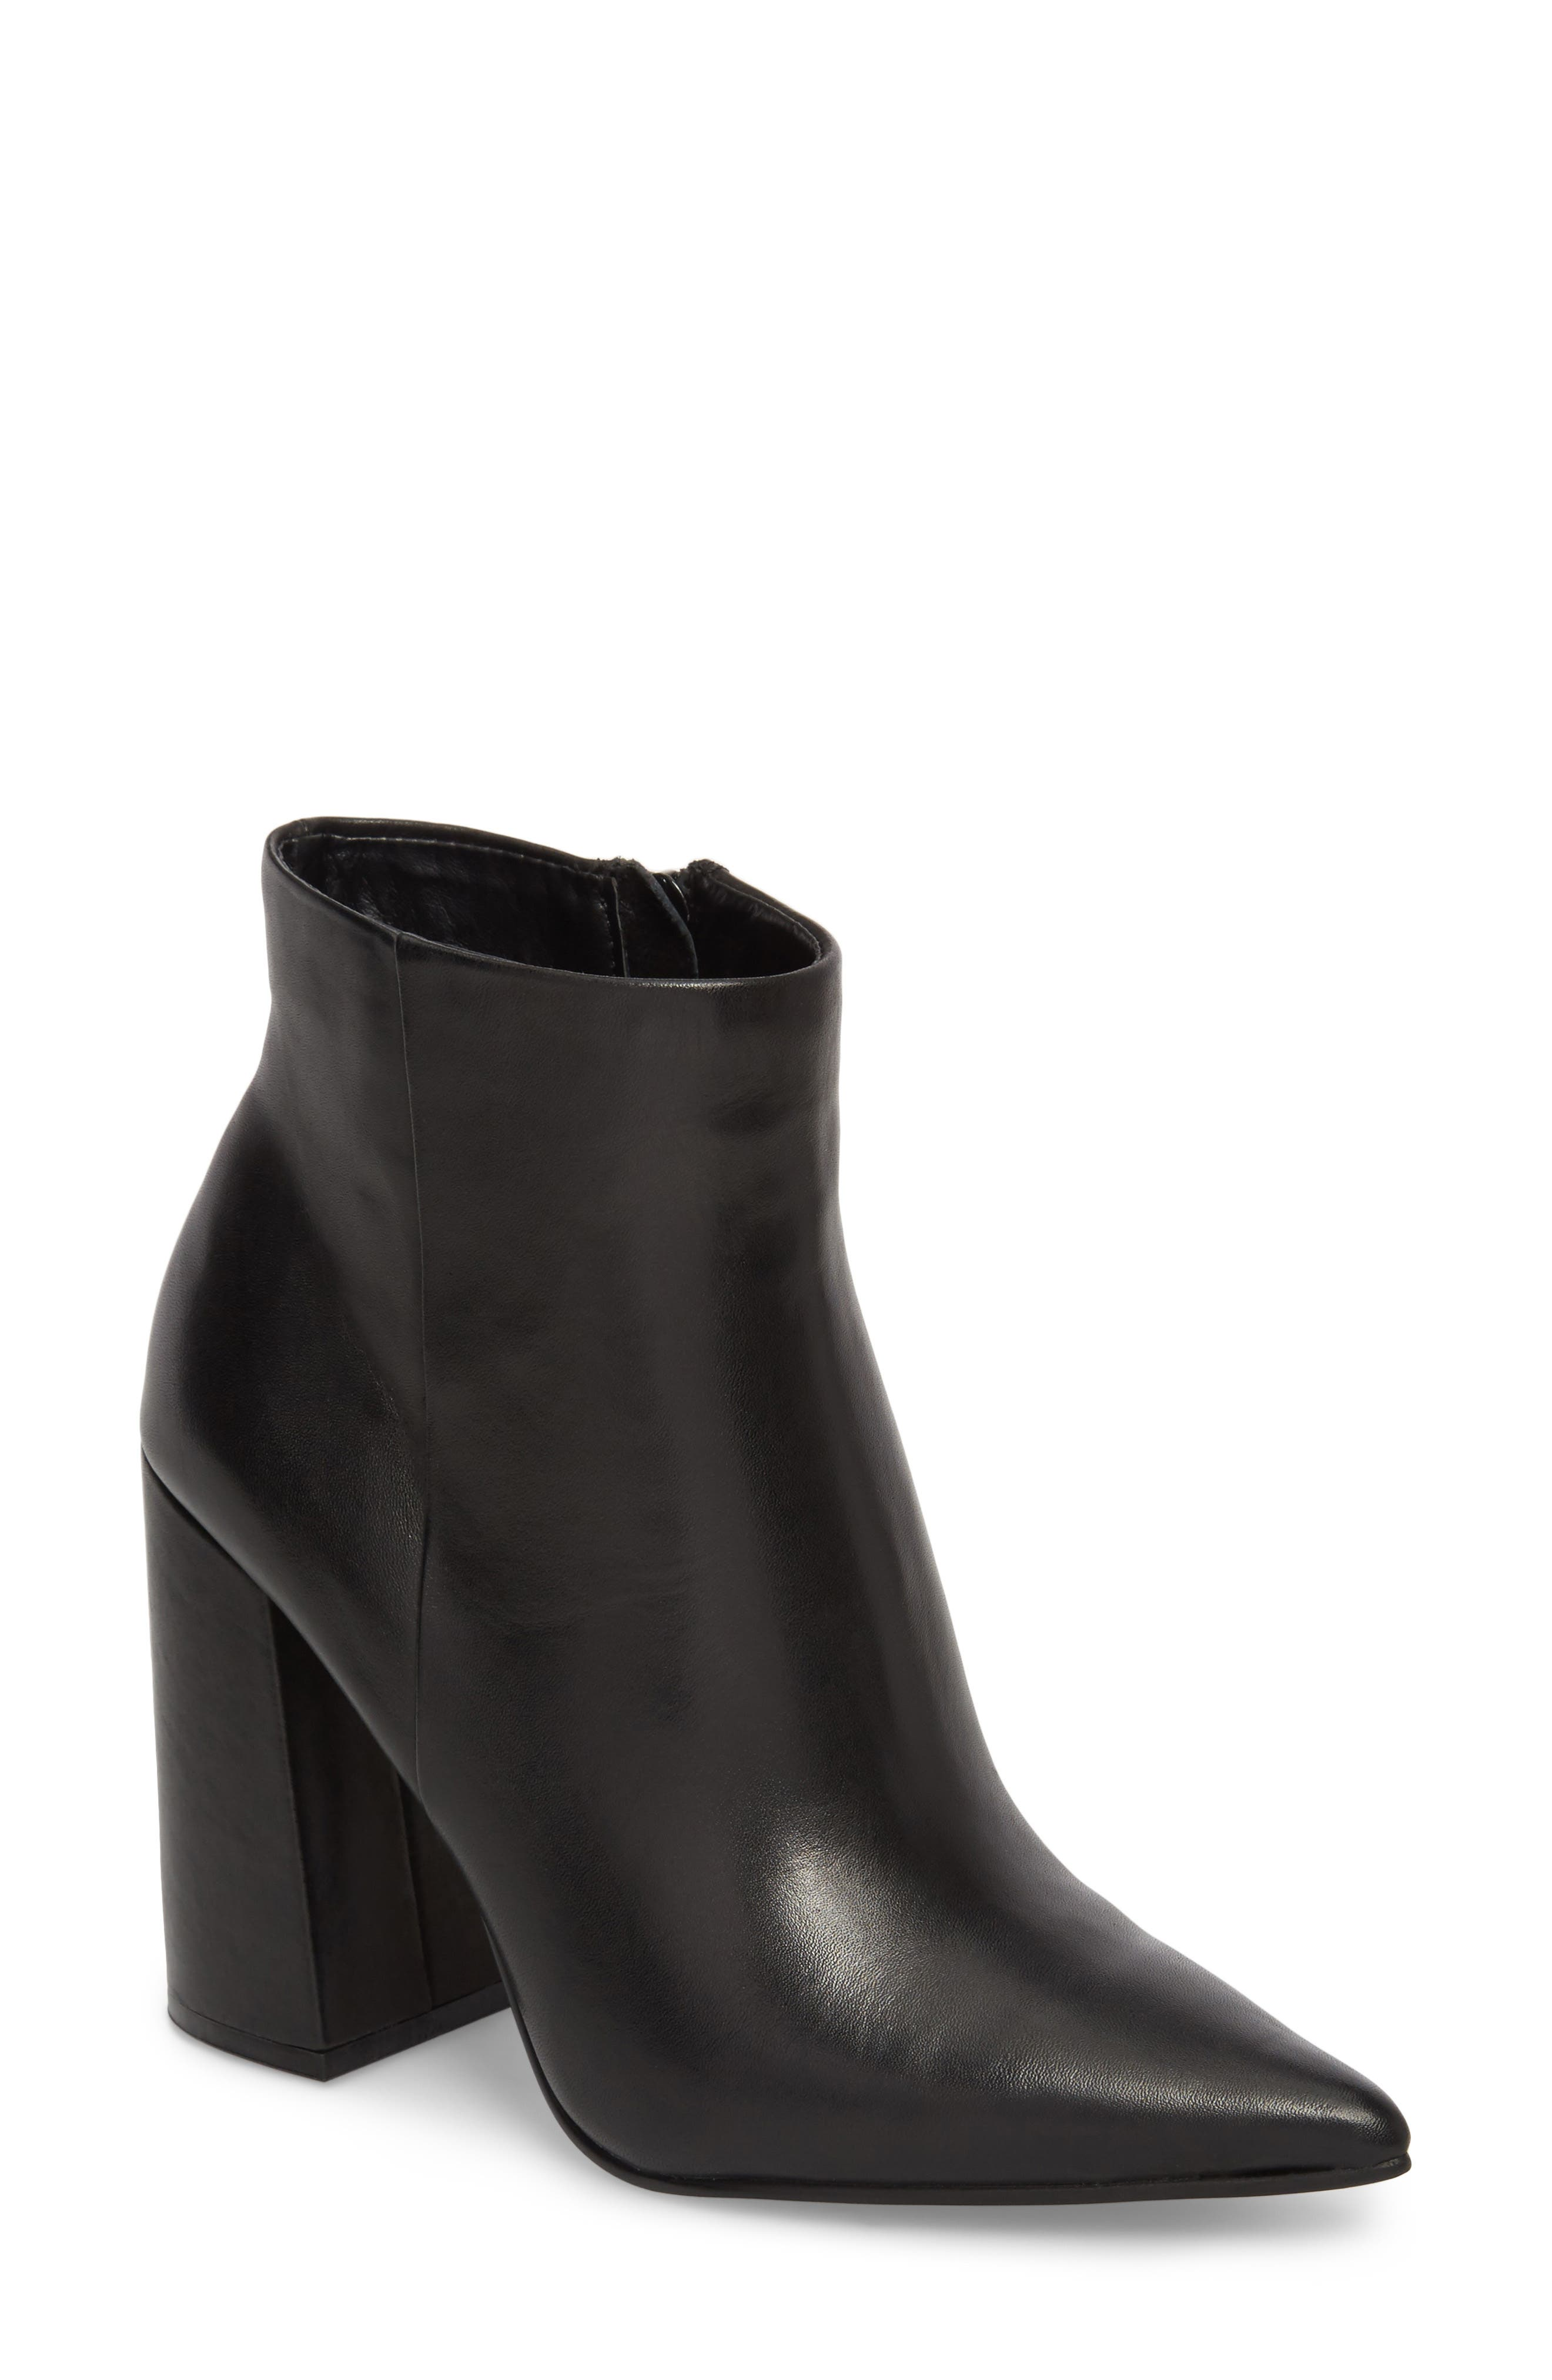 Justify Flared Heel Bootie,                             Main thumbnail 1, color,                             001